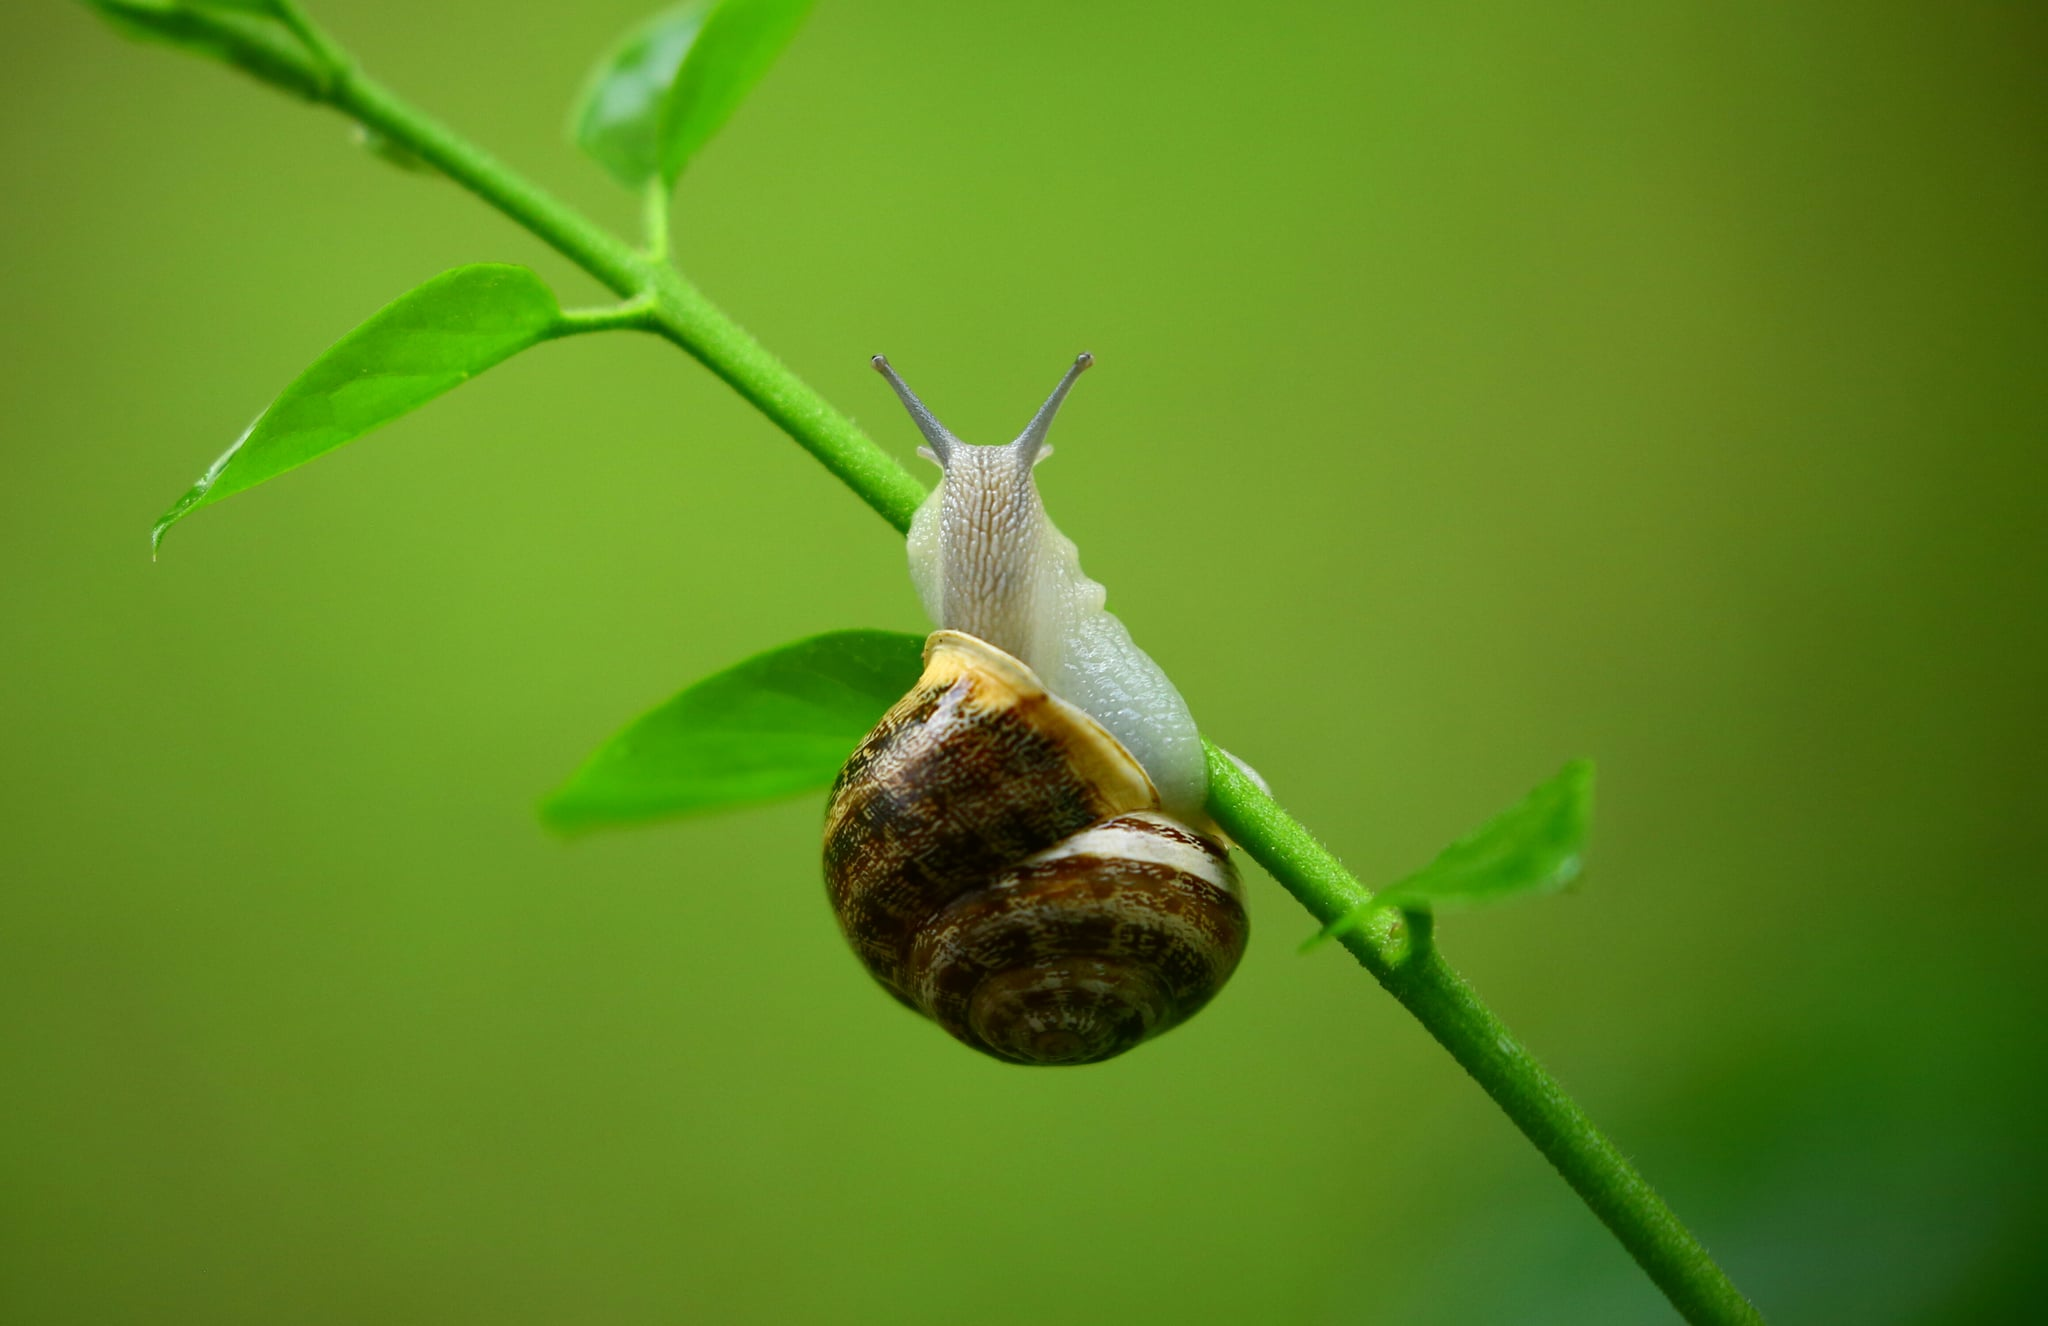 Snail Products Get Rid of Acne | POPSUGAR Beauty